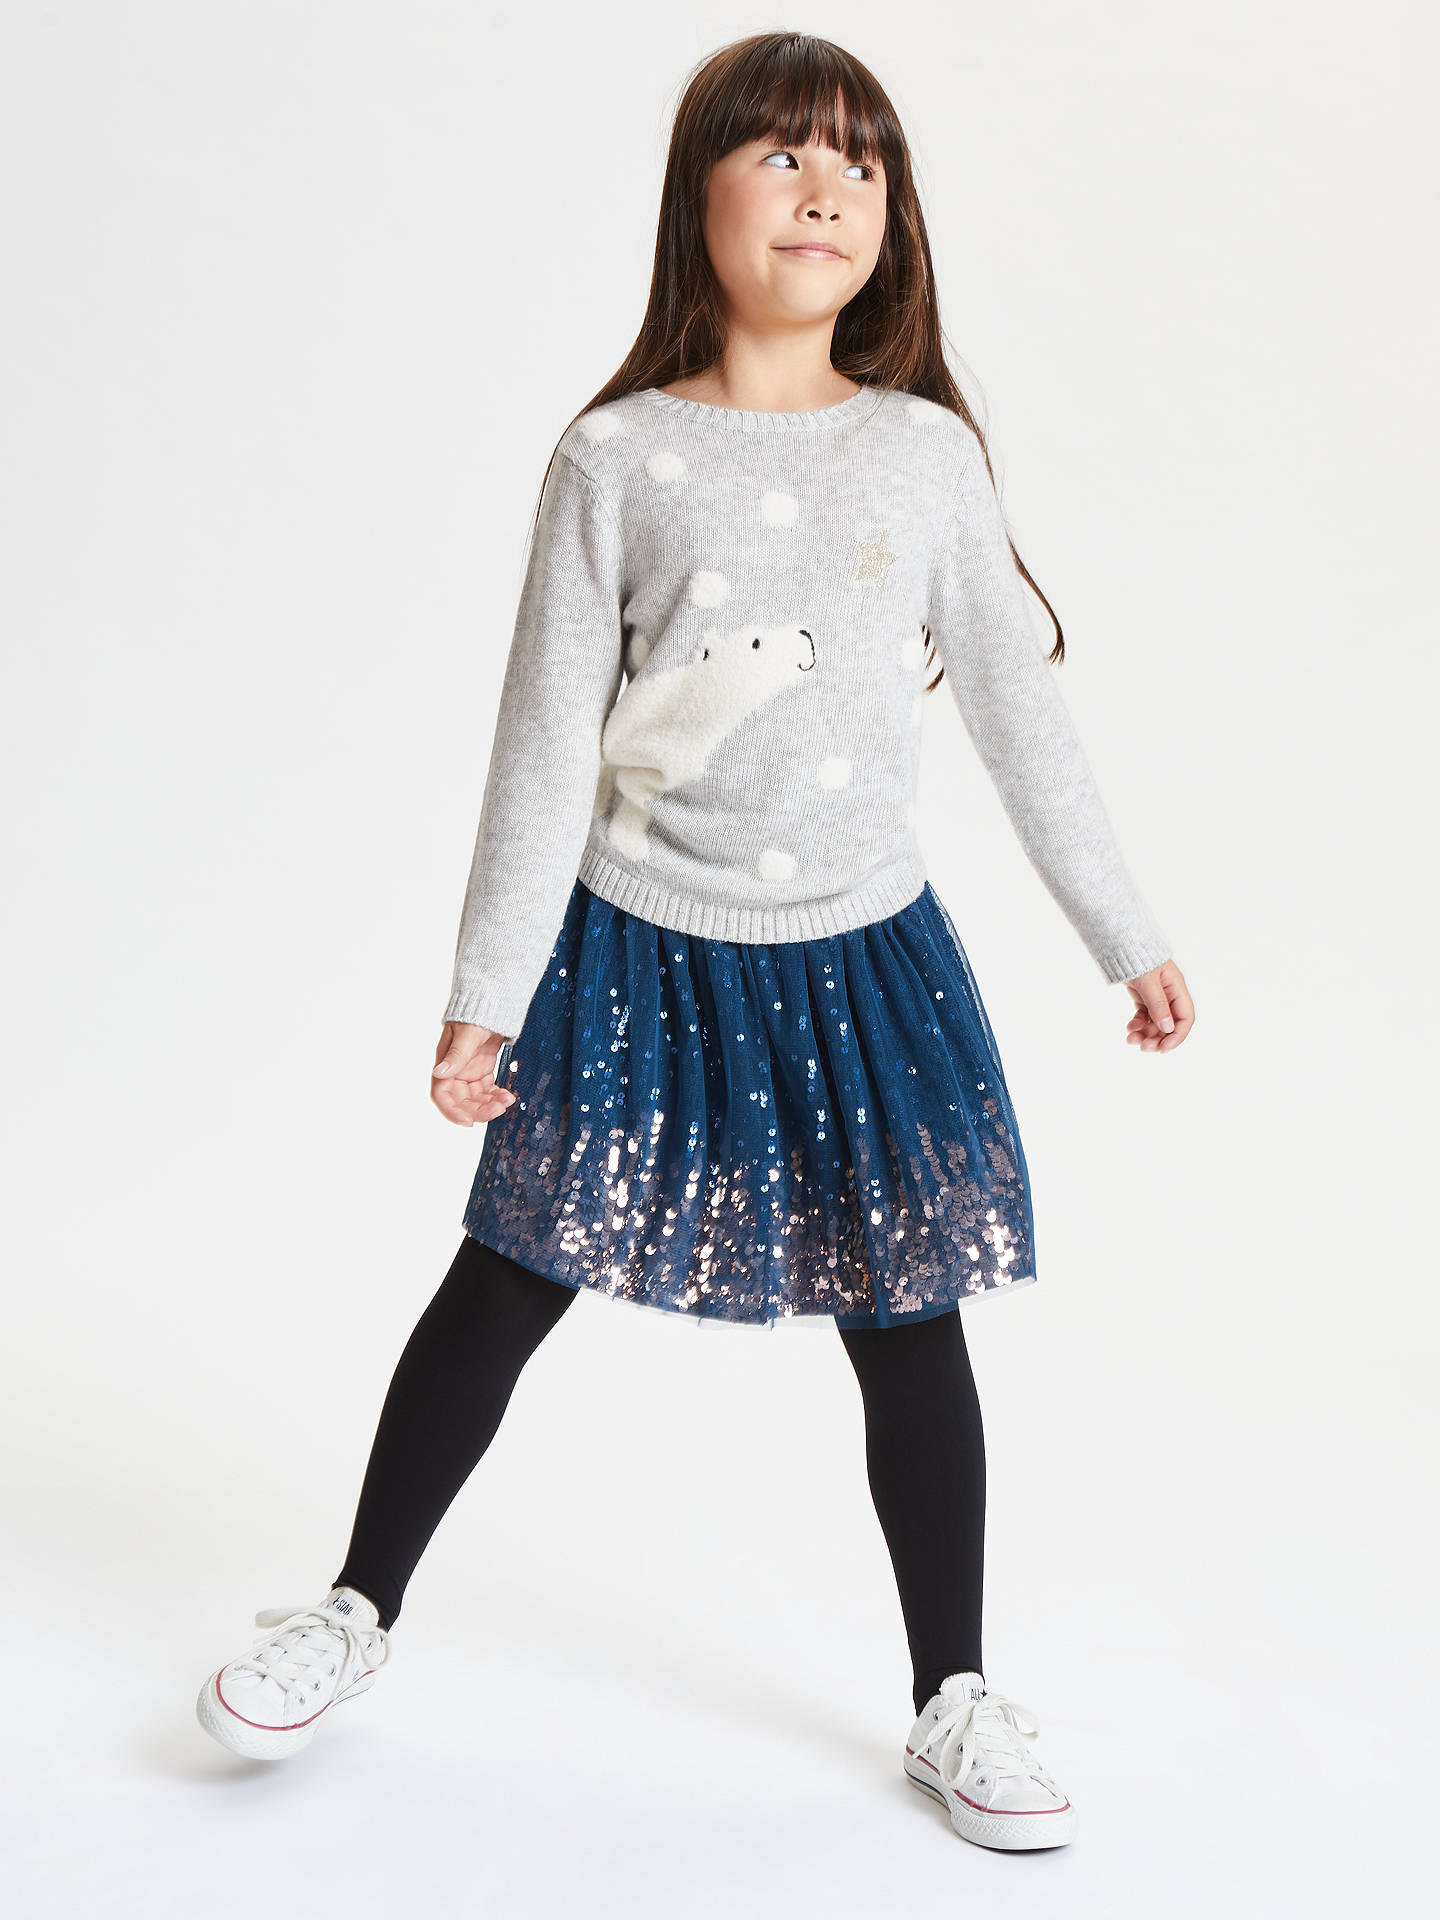 BuyJohn Lewis & Partners Girls' Polar Bear Jumper, Grey, 7 years Online at johnlewis.com